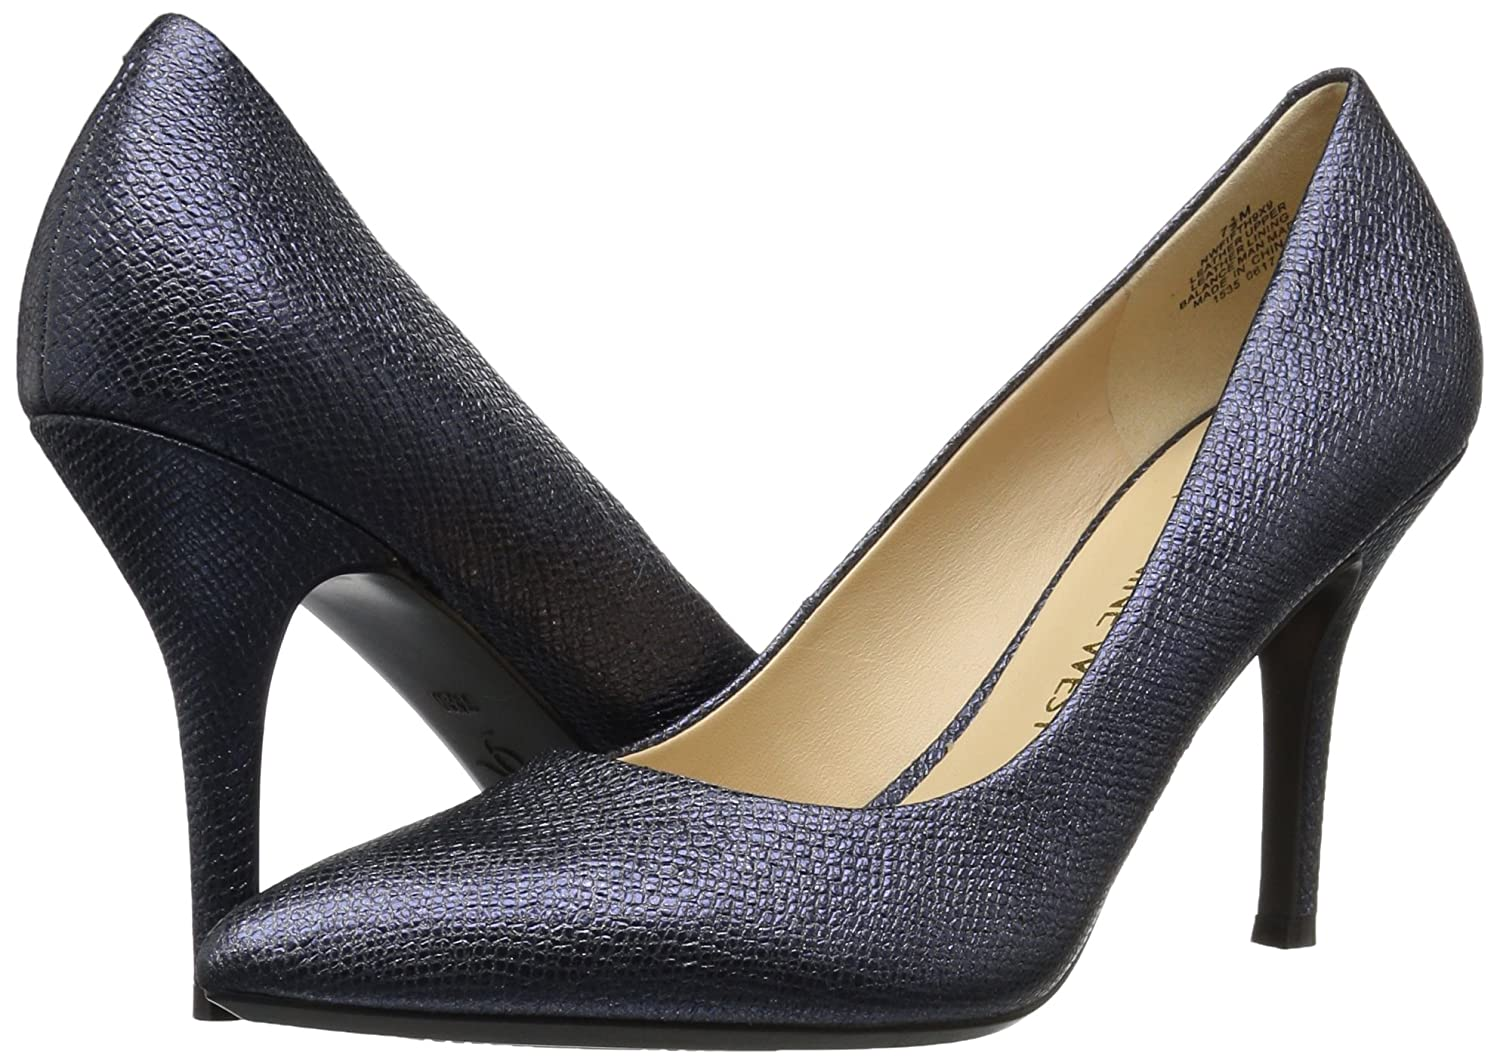 Nine West Women's FIFTH9X Fifth Pointy Toe Pumps B06WVBFCLB 8.5 B(M) US|Navy Metallic